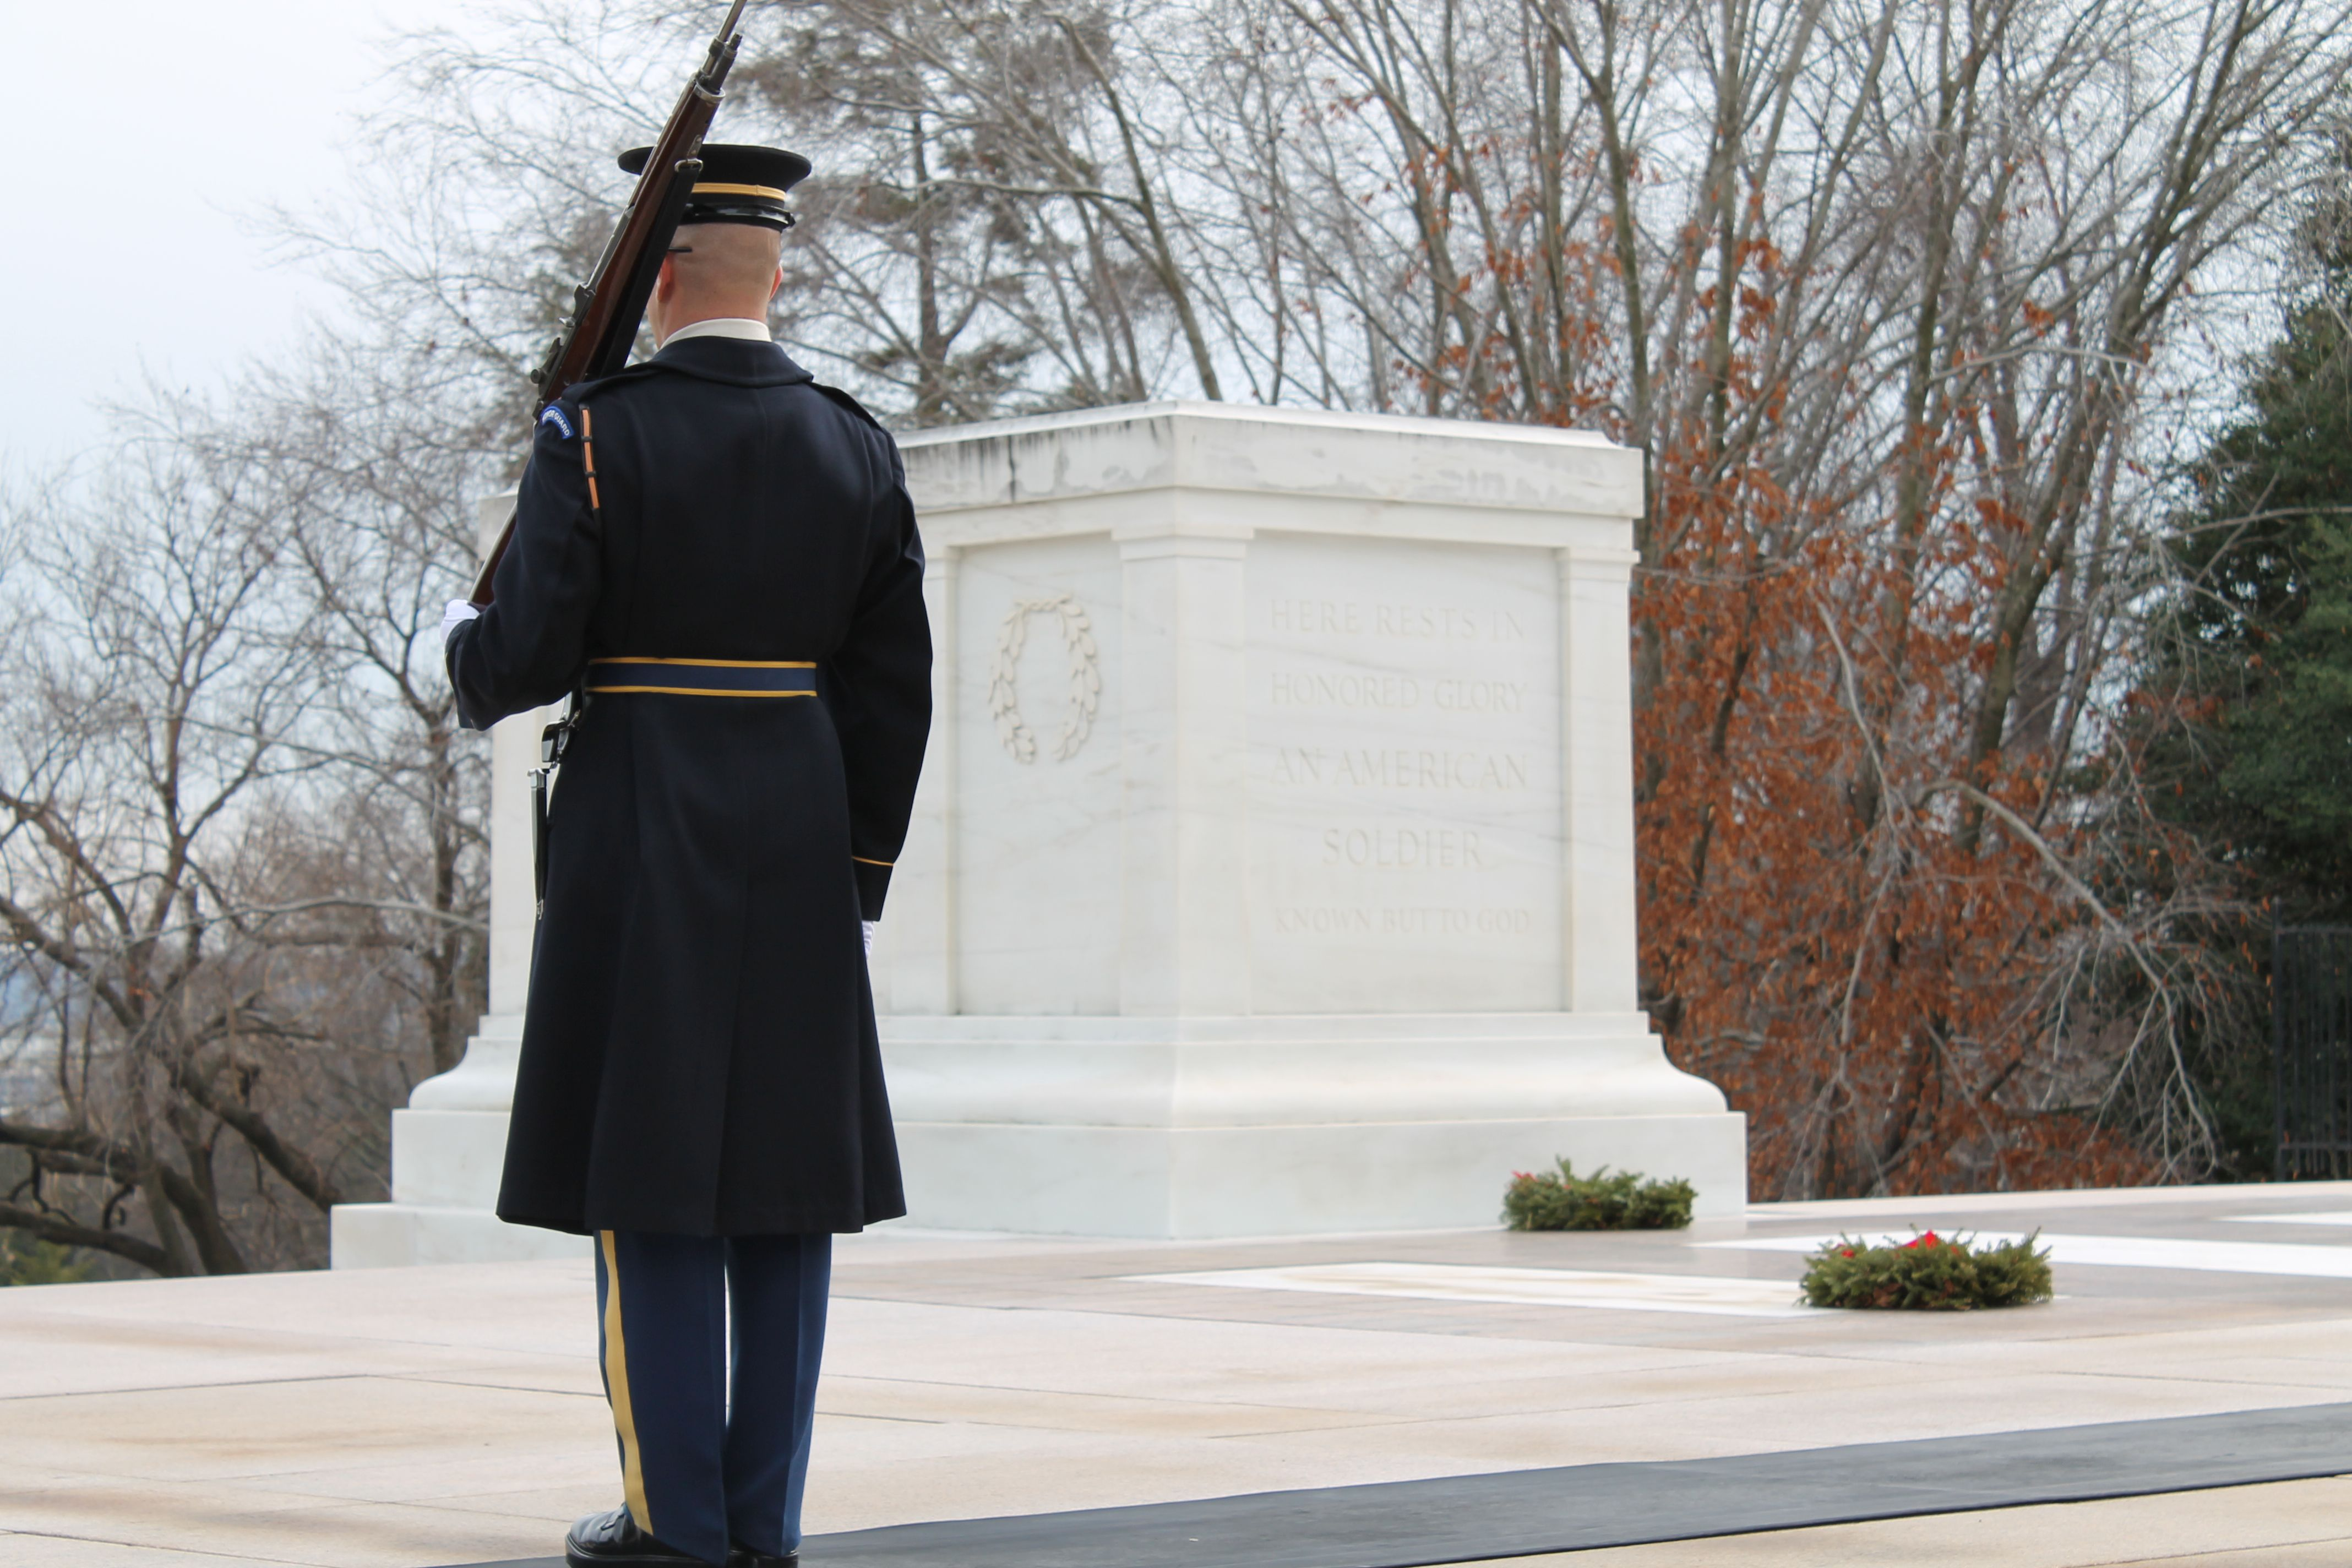 Guarding the Tomb I was able to see this on 1/20/2012. So moving.